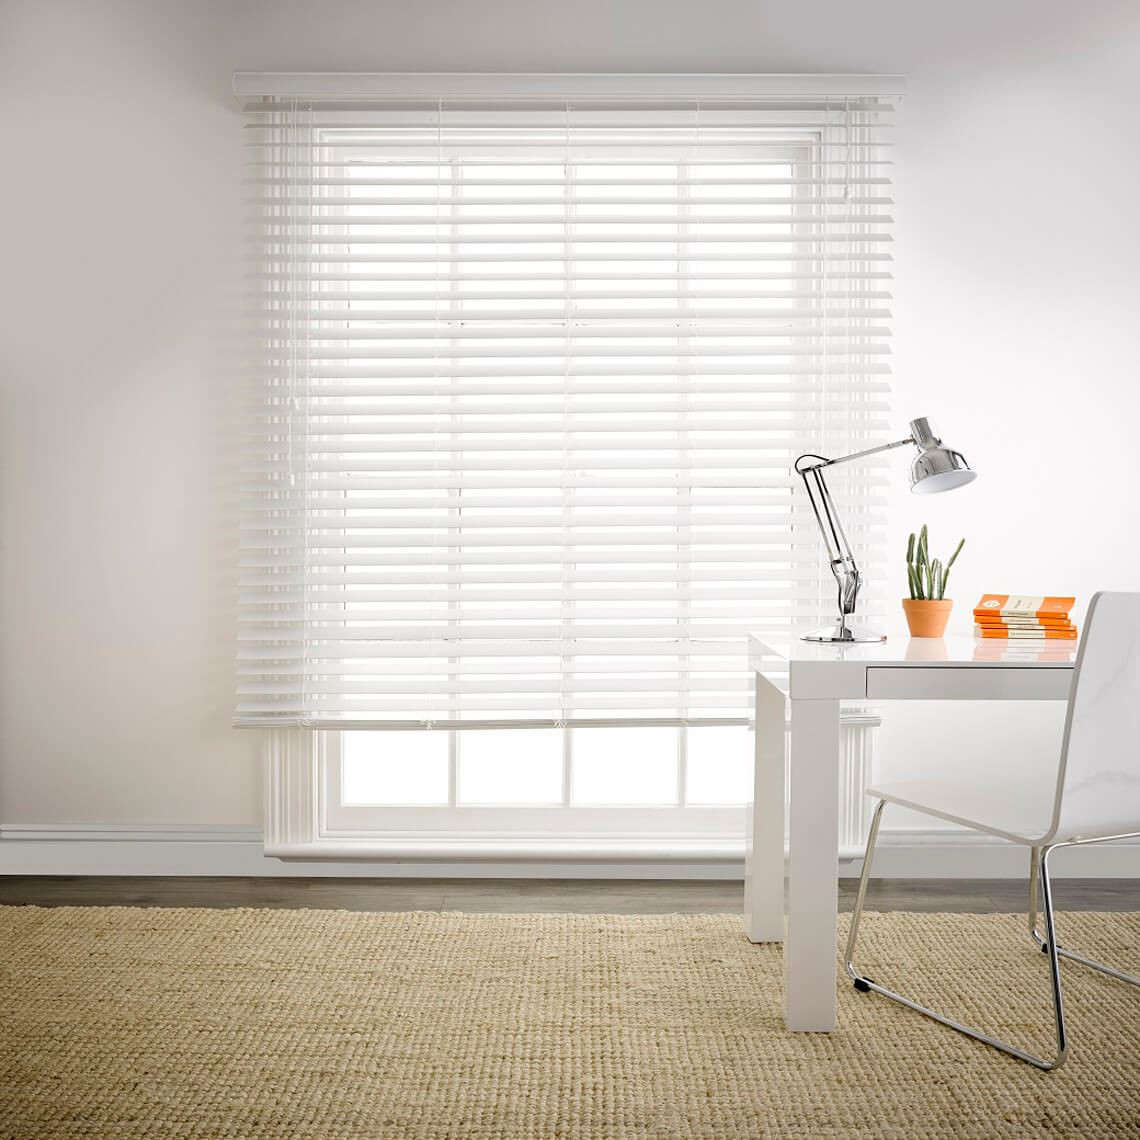 Beaumont Privacy Blind Size W 180cm x D 6cm x H 210cm in White Polyvinyl chloride Freedom by Freedom, a Curtains for sale on Style Sourcebook